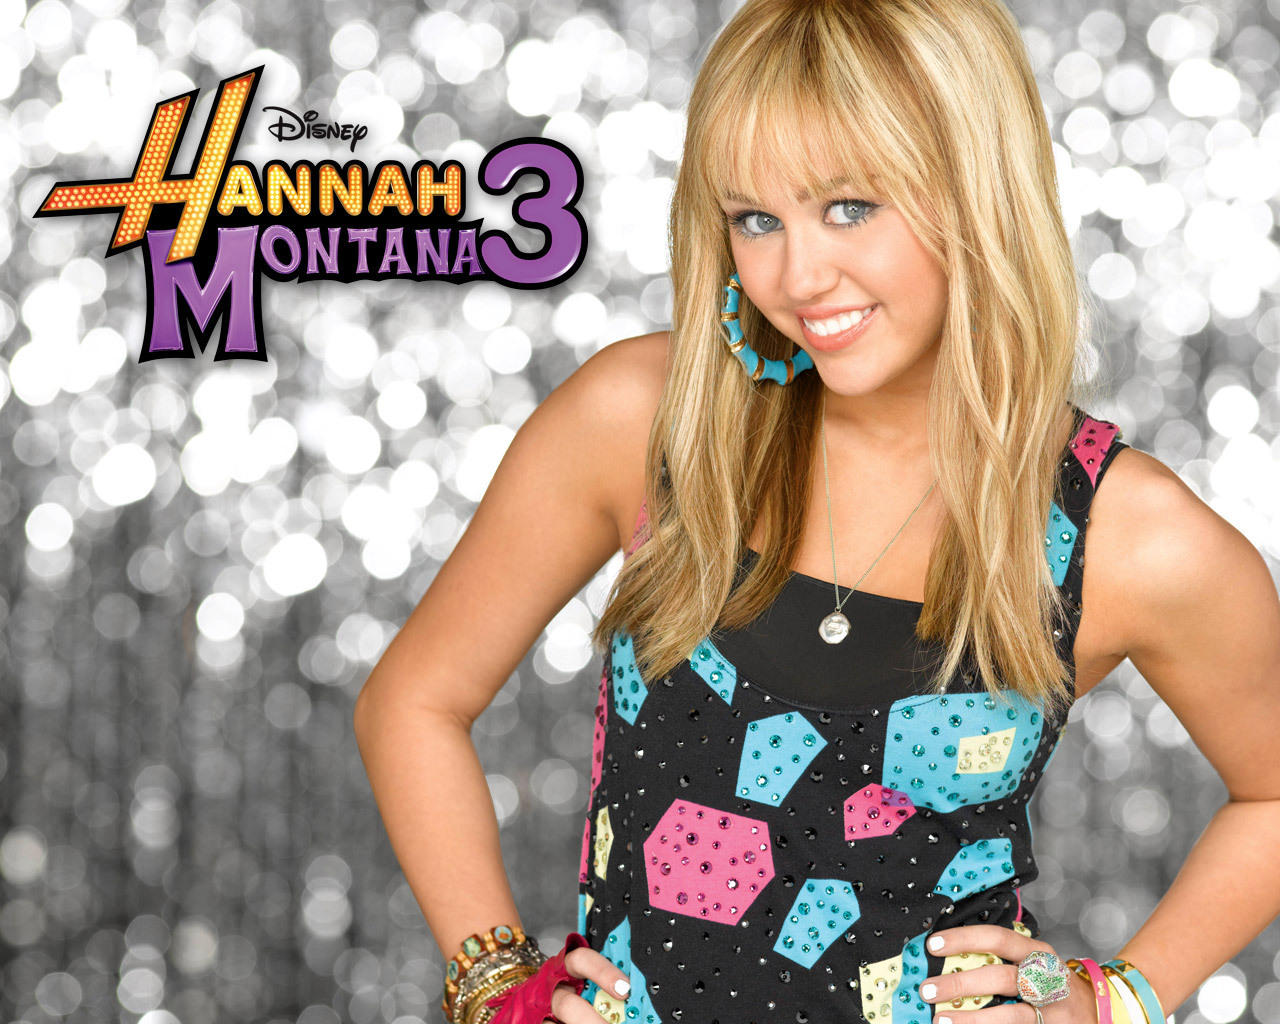 Hannah Montana Photos and Pictures